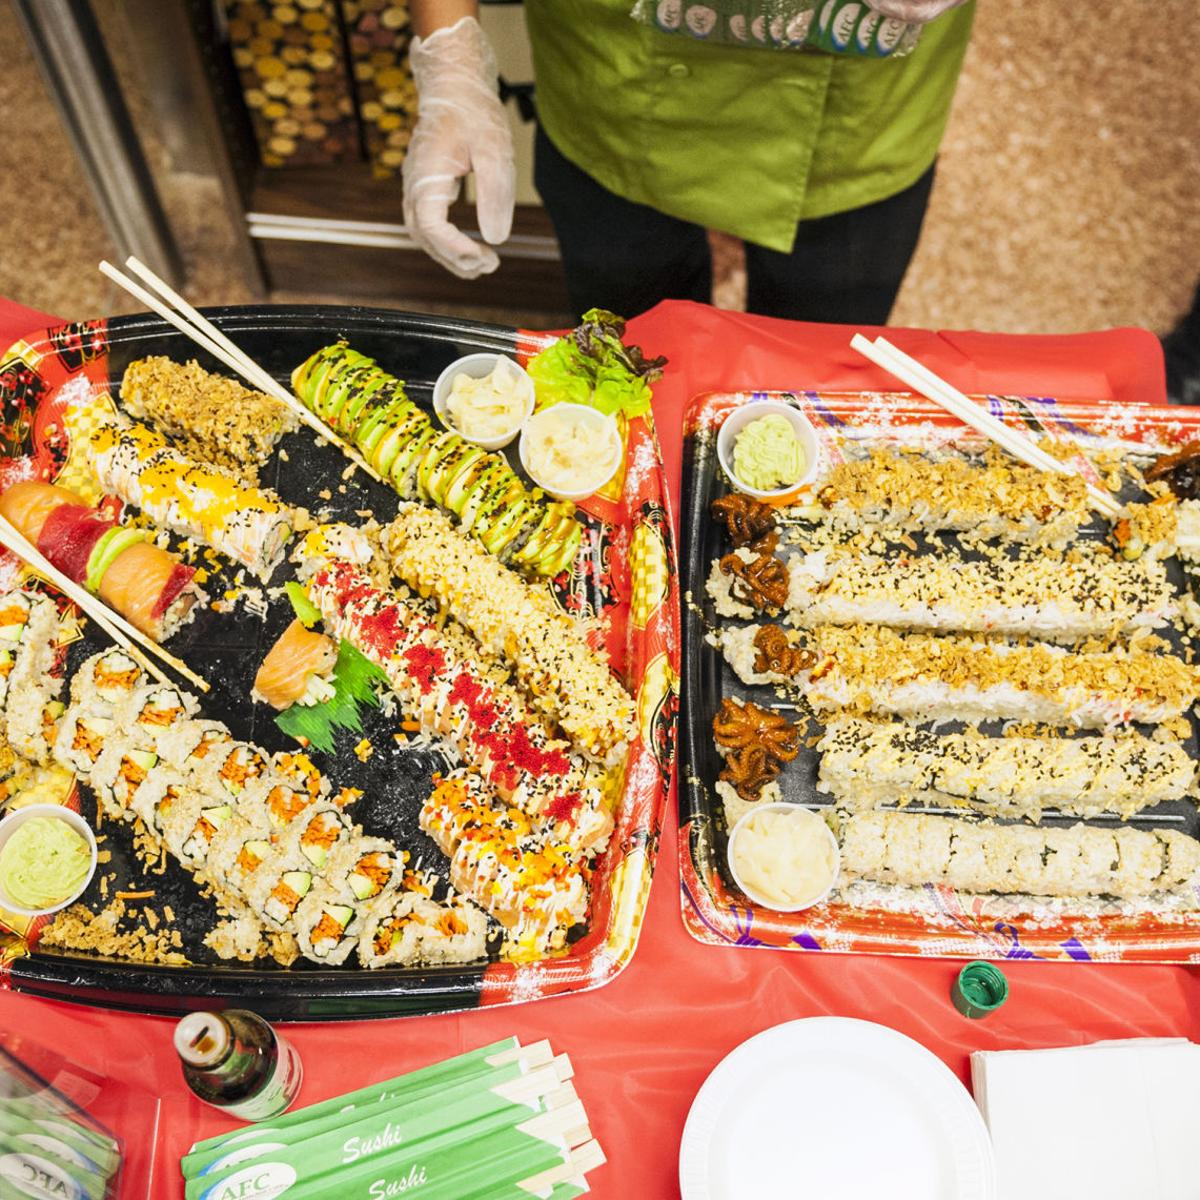 Publix Stacks the Deck (and the Store) with Prepared Foods